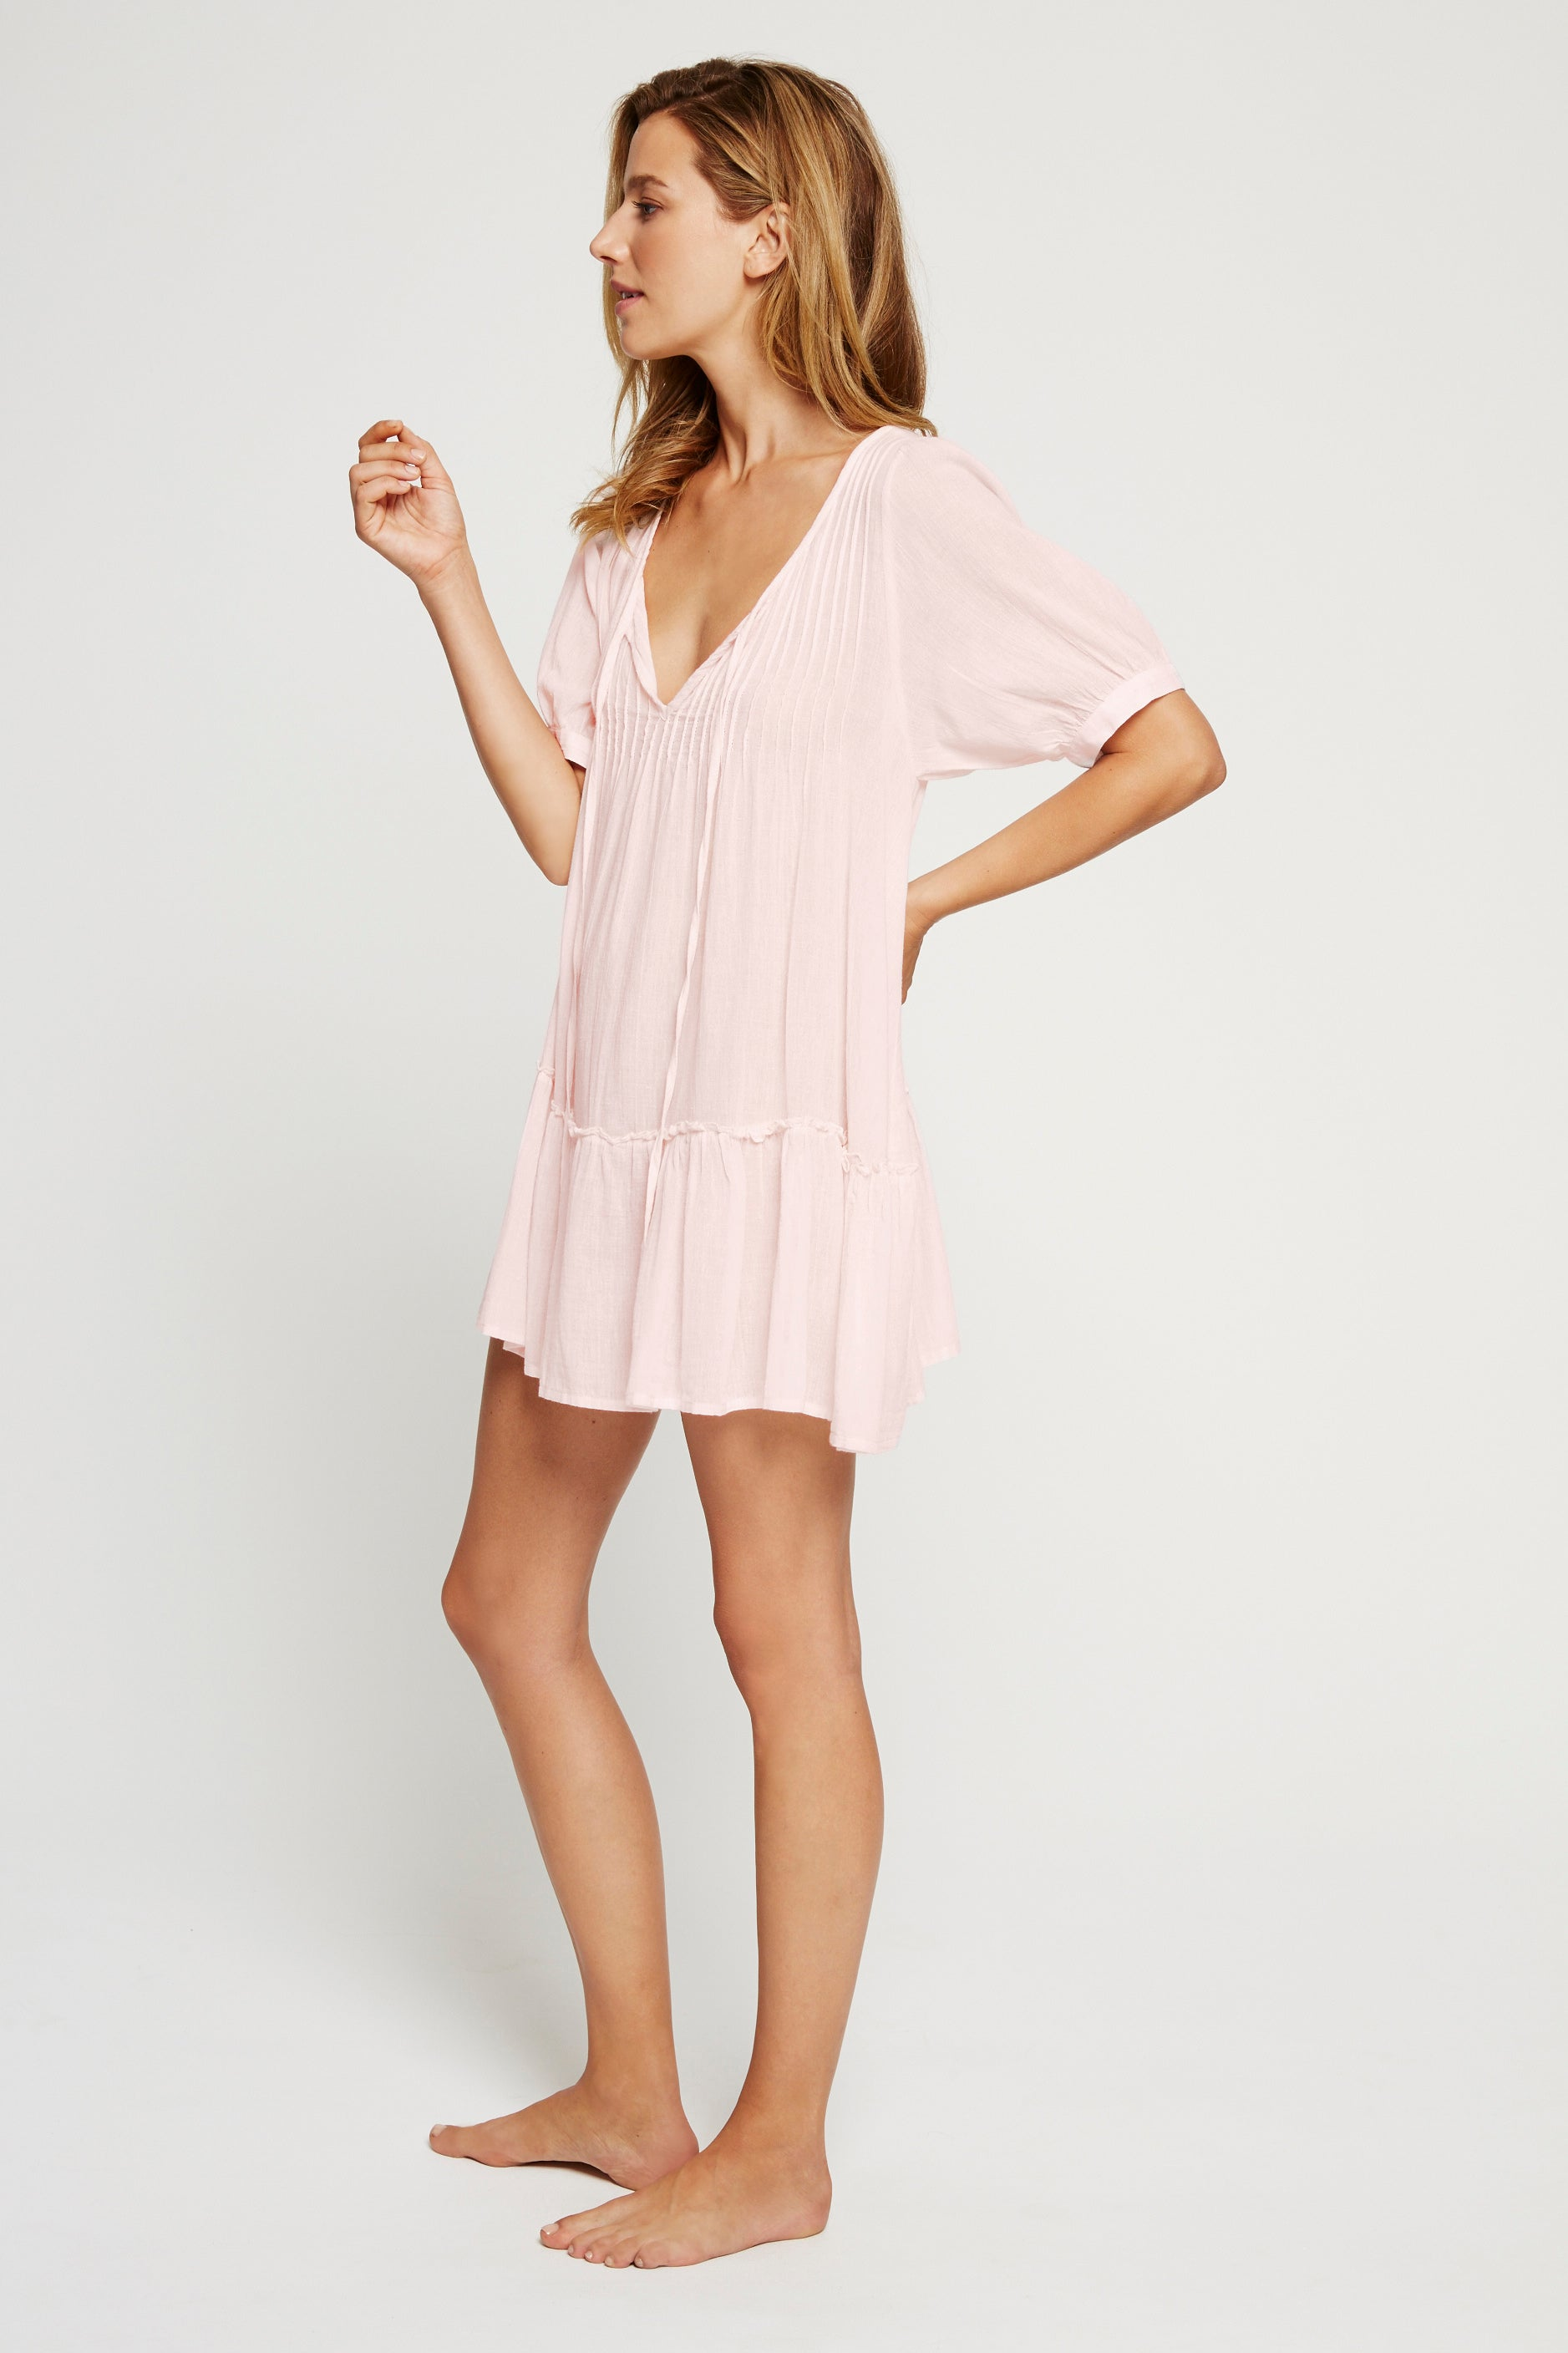 Pintuck_Nightie_Pink_0014-w1a